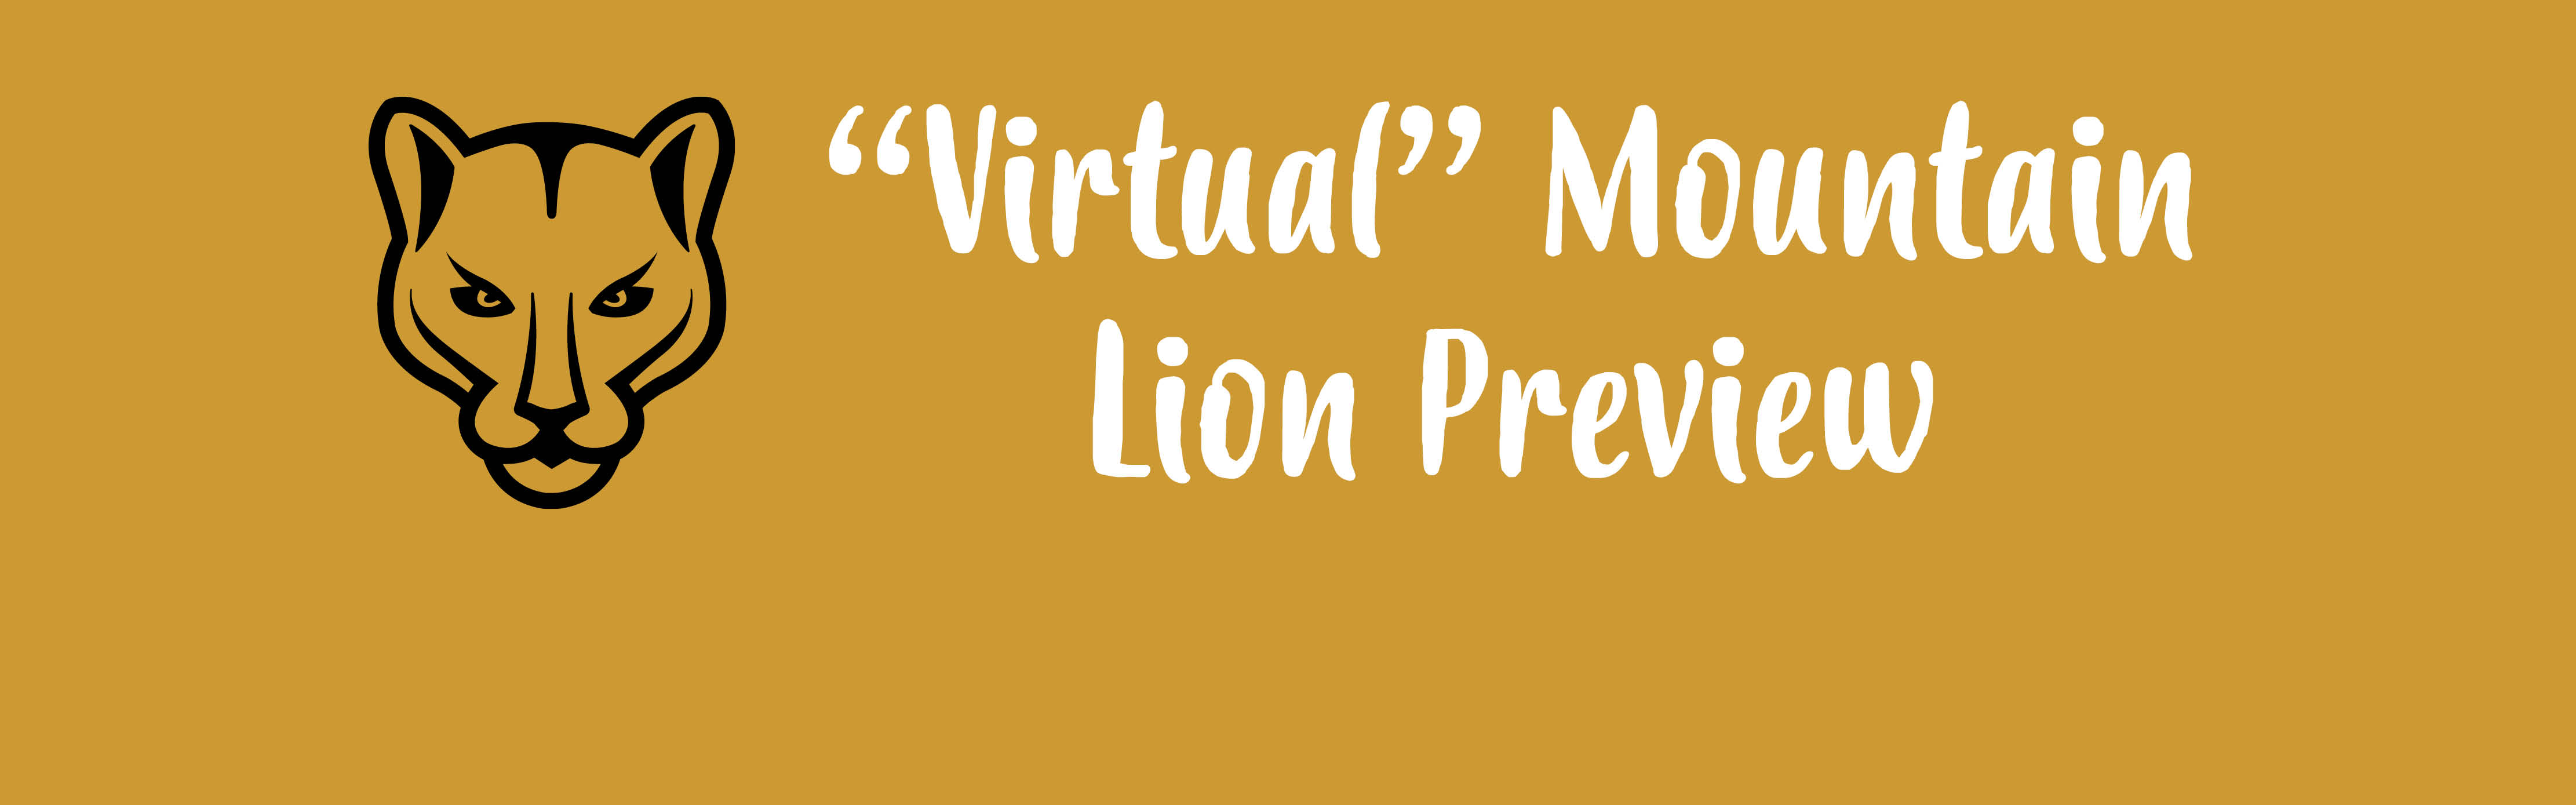 Virtual Mountain Lion Preview